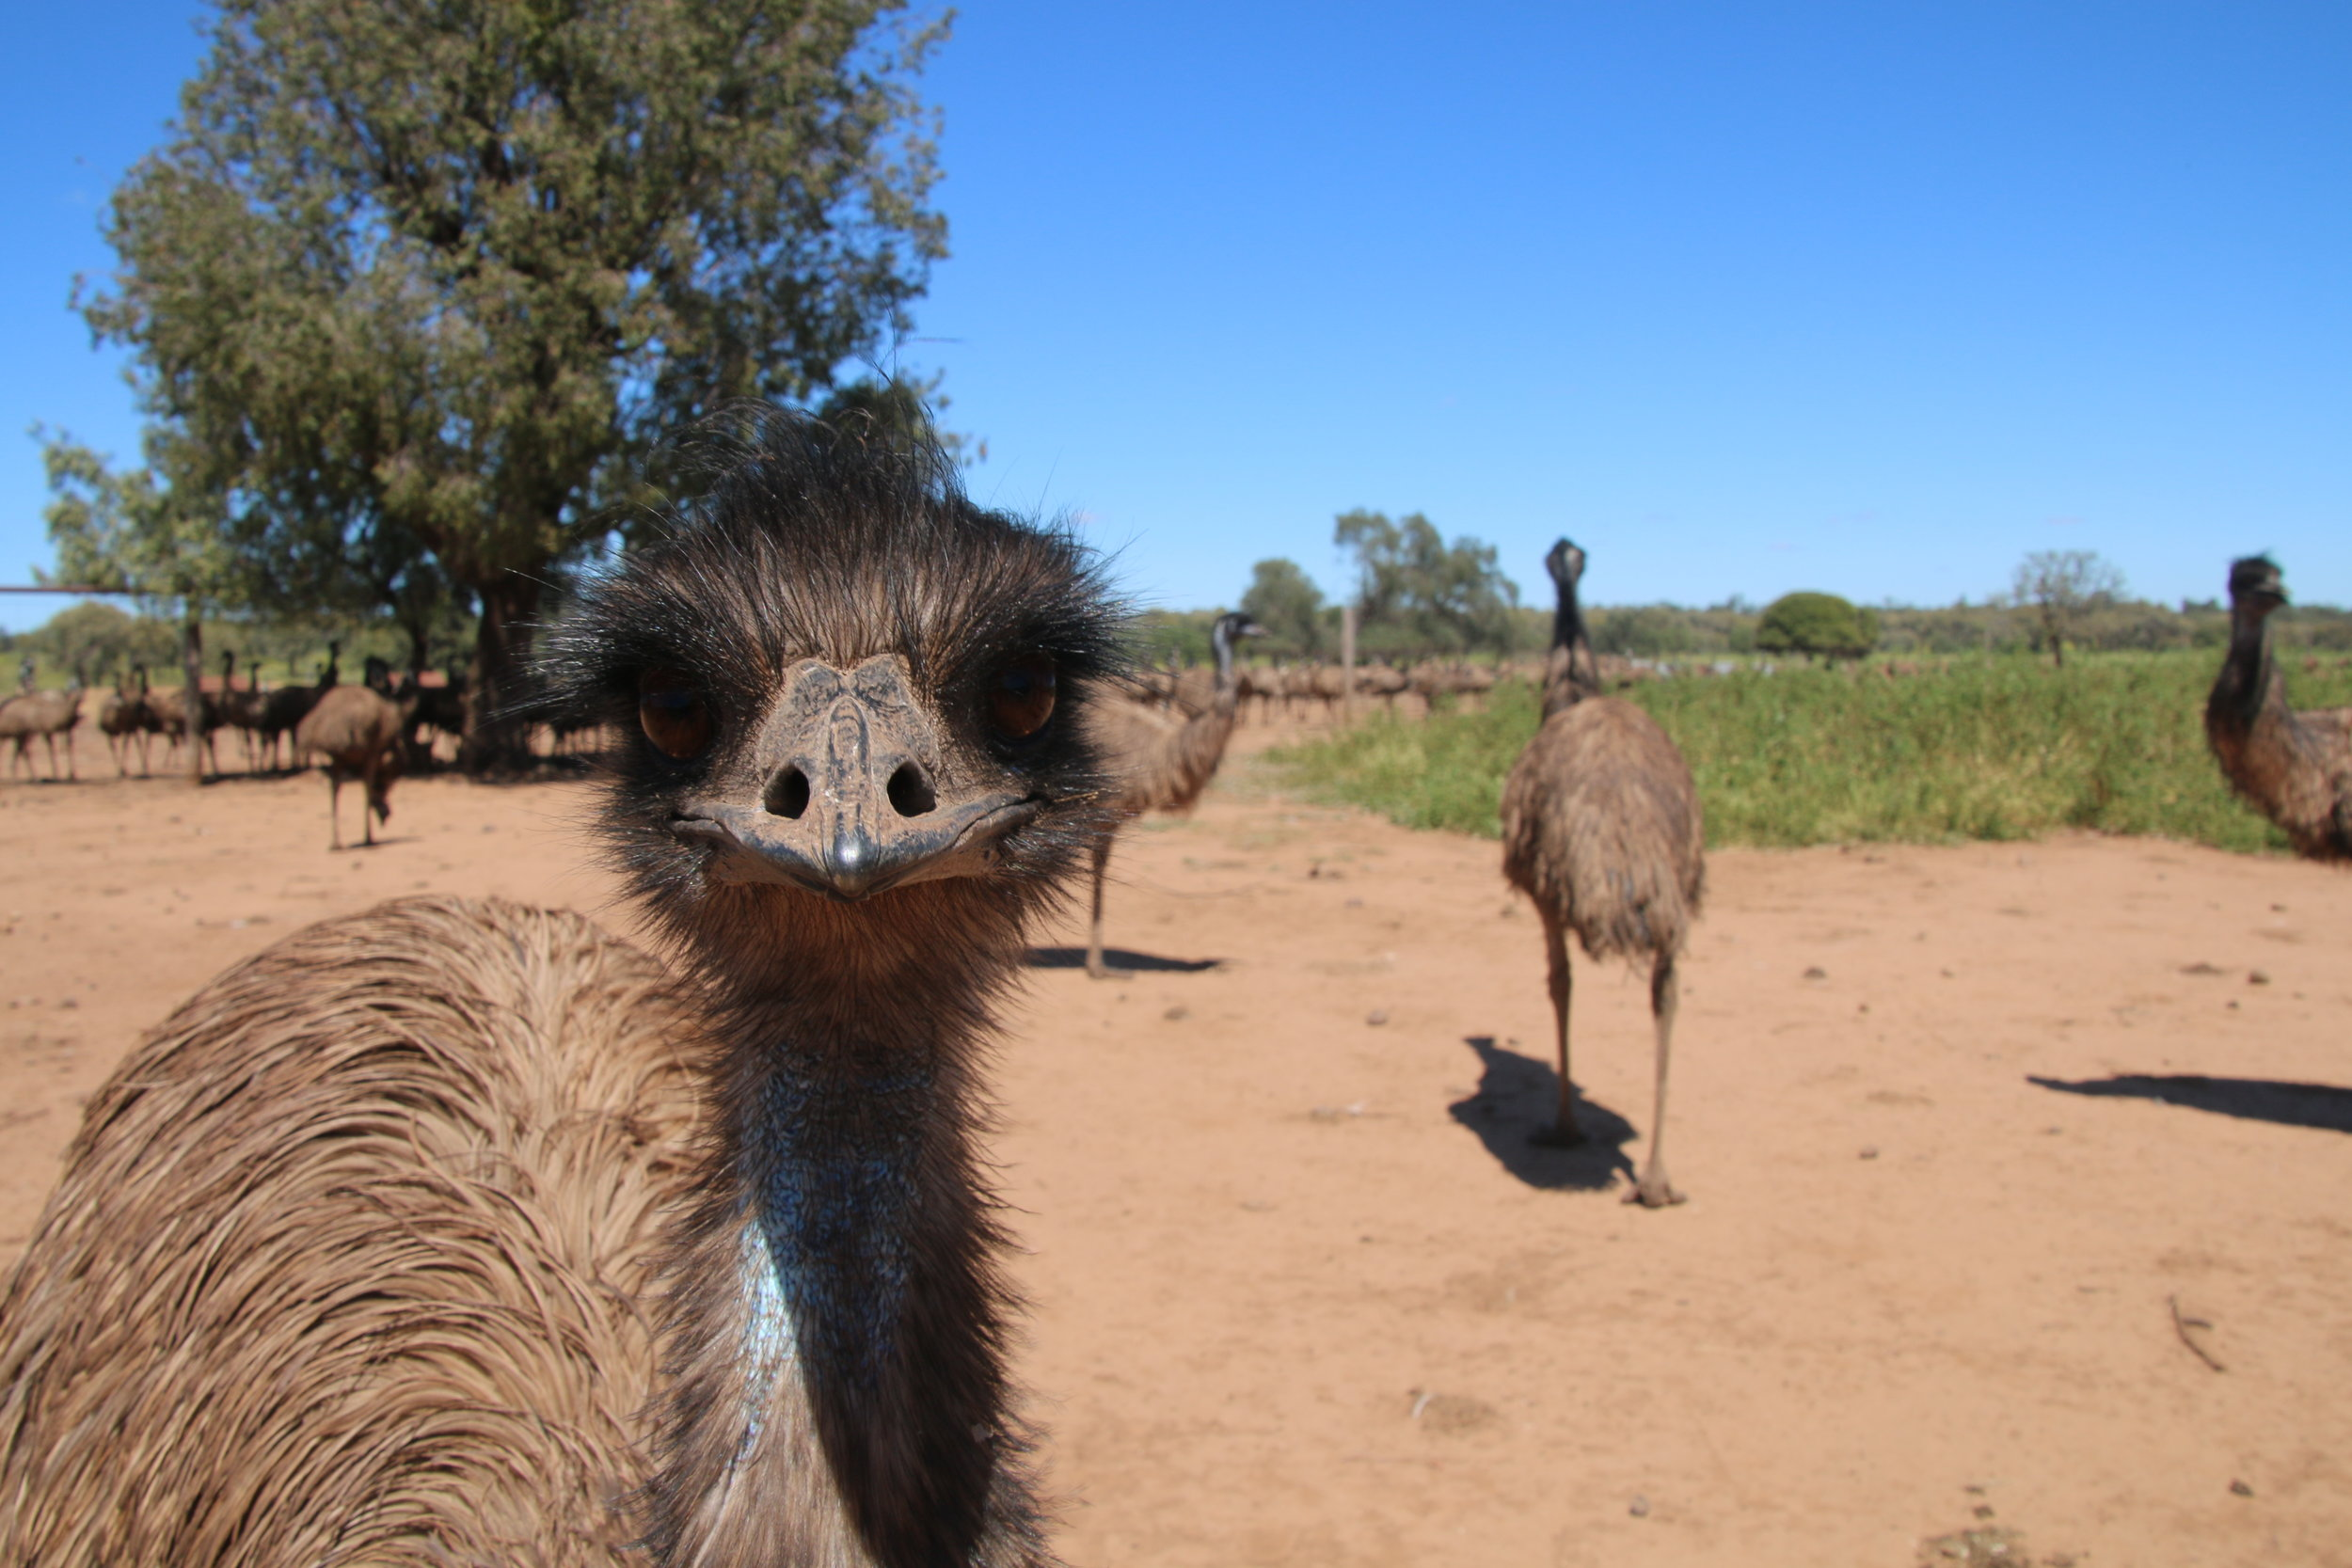 Emus have been studied in a farm environment, but rarely in the wild. © Julia Ryeland